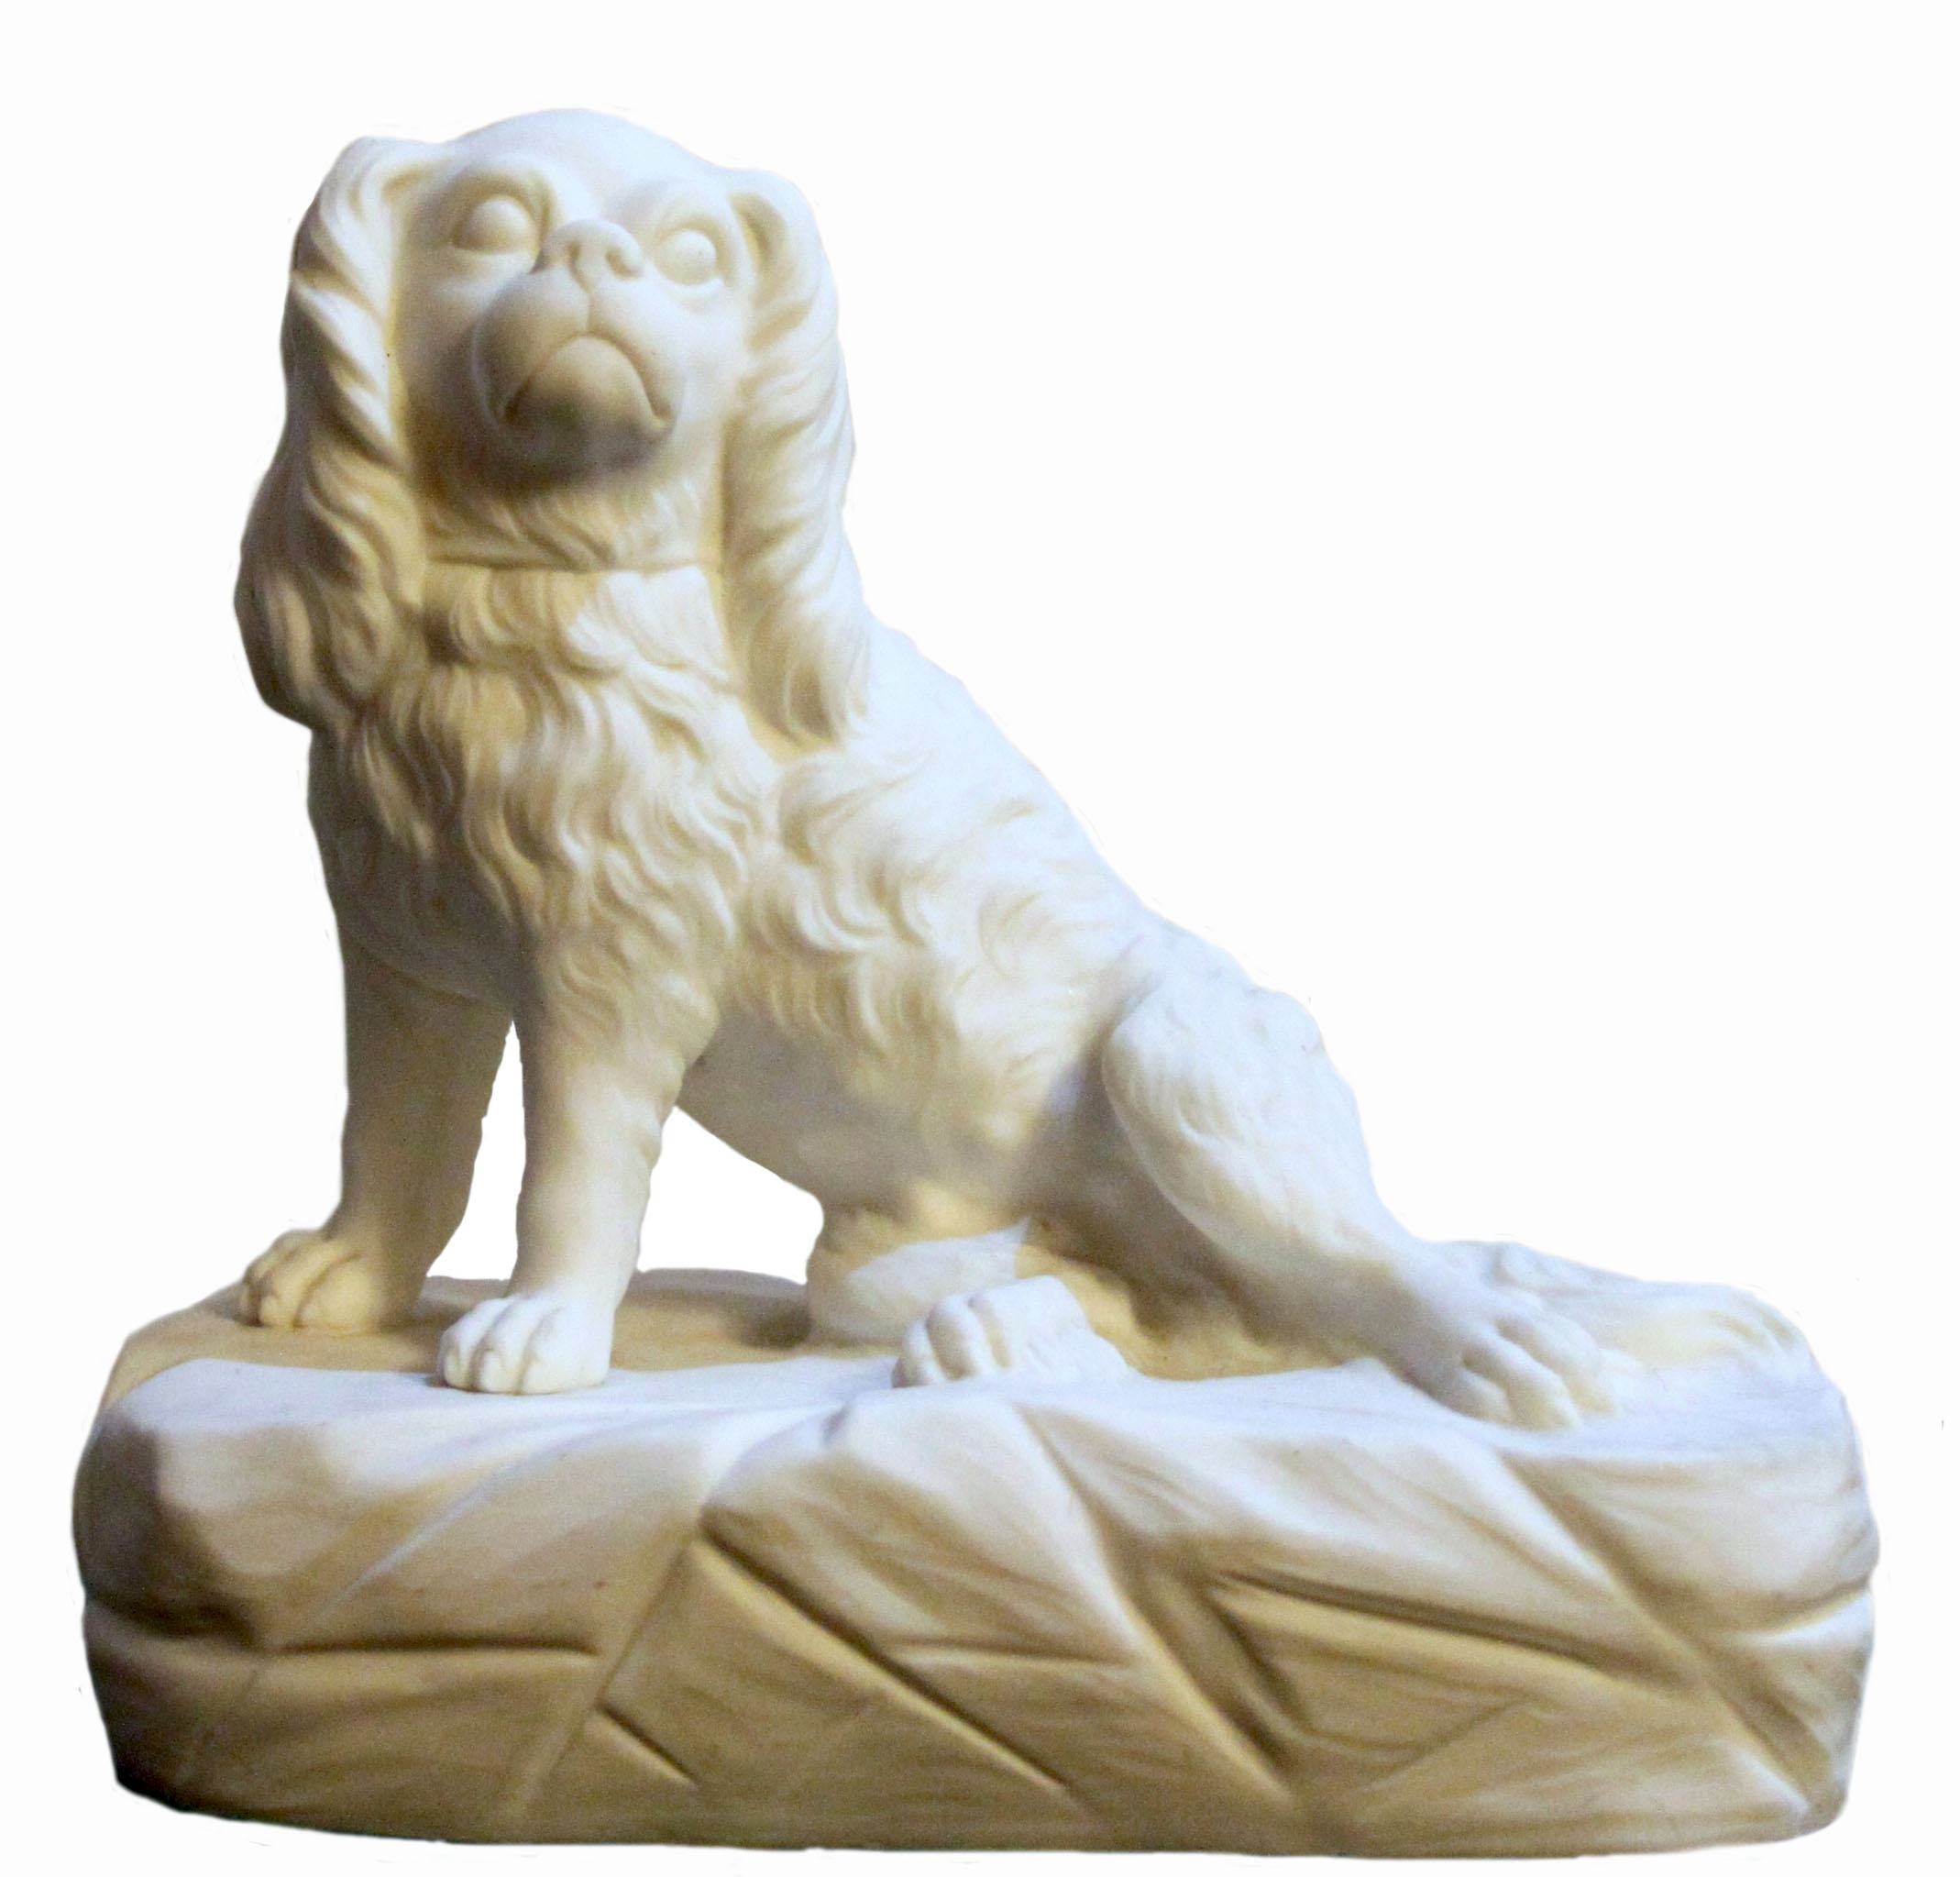 Click to see full size: A Parian / biscuit ware model of  a recumbent King Charles Cavalier Spaniel seated on a cushion.